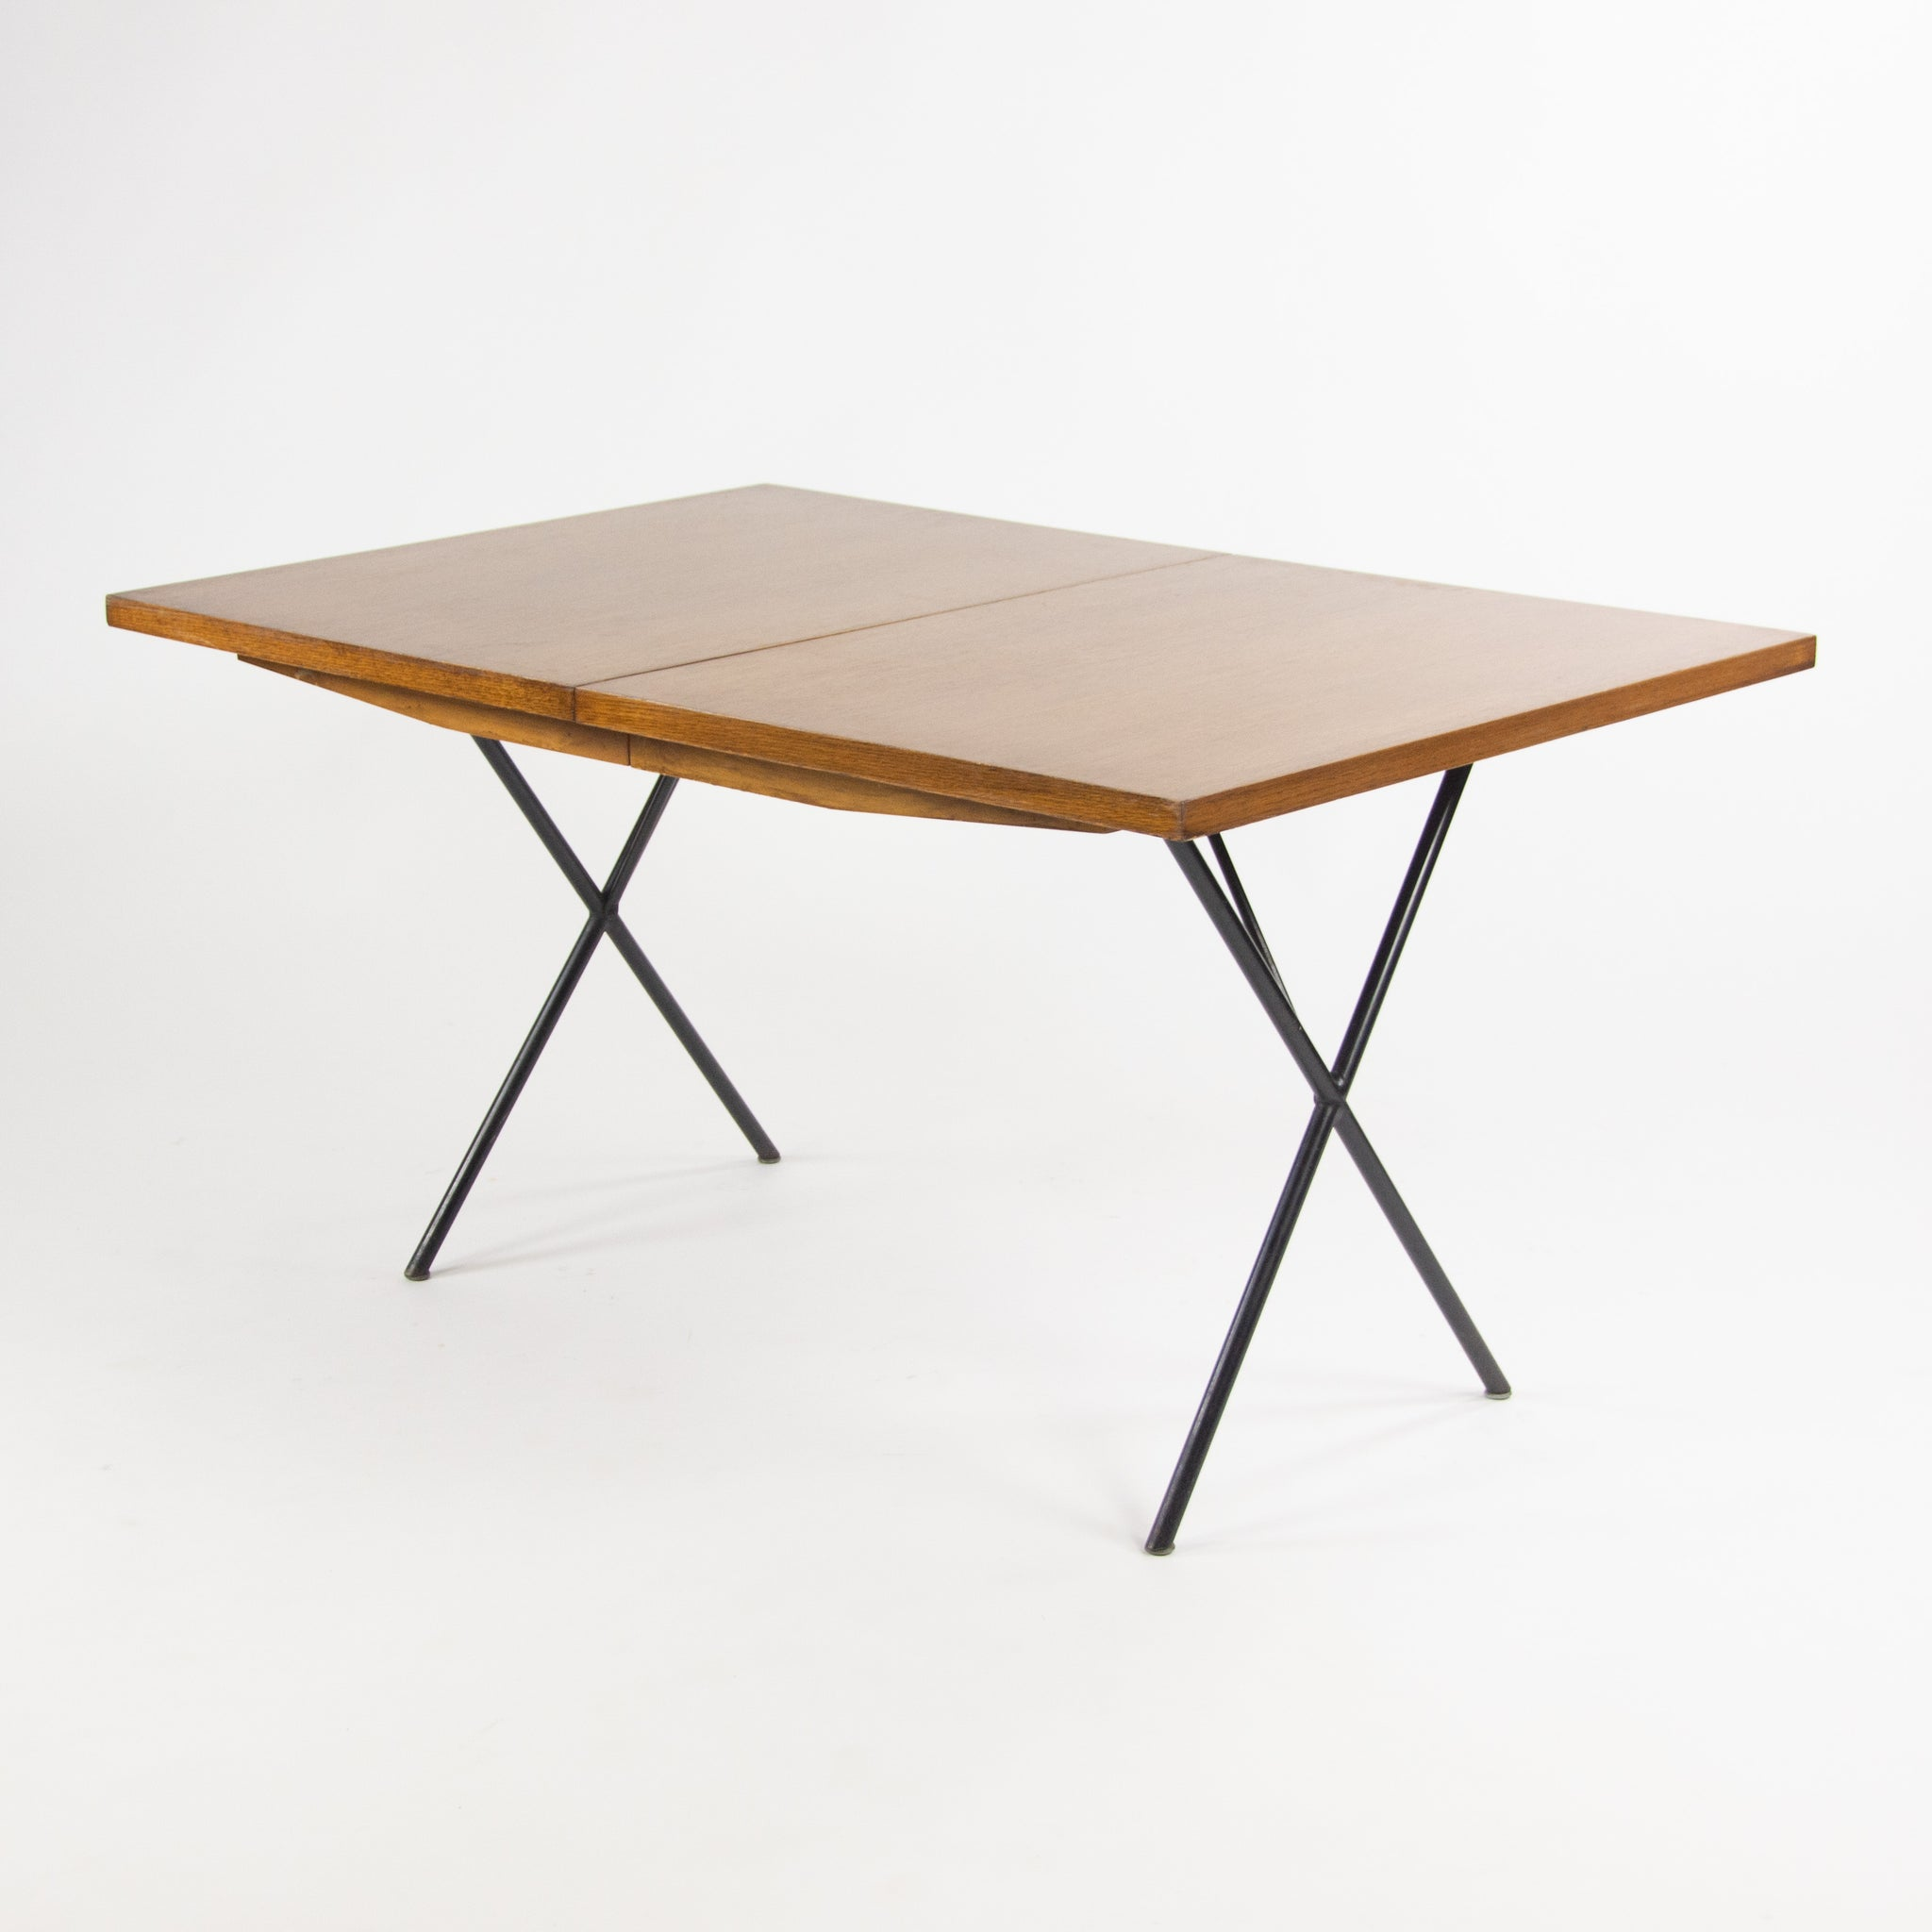 1950's Original George Nelson Herman Miller X Leg Extension Dining Table 5260